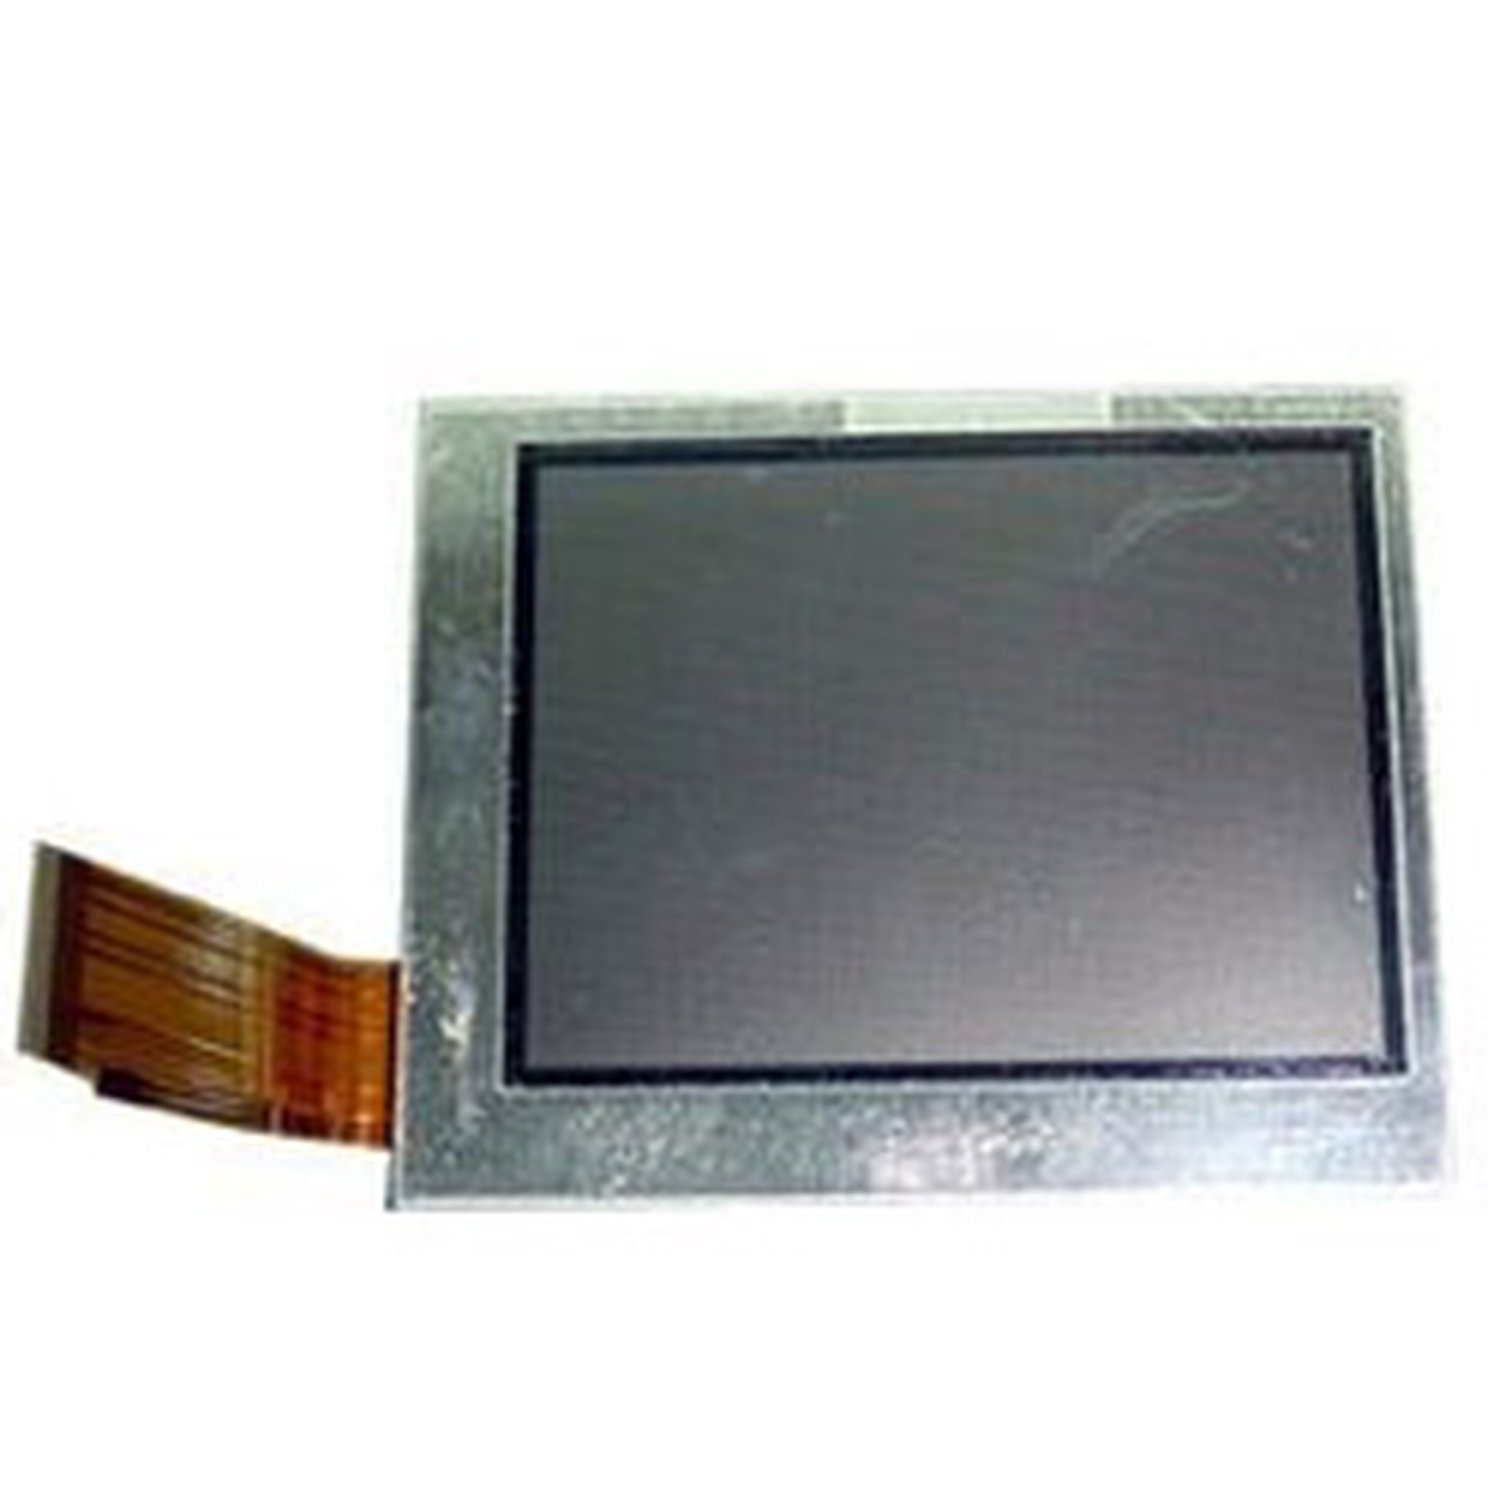 TFT LCD FOR NDS * TOP * [refurbished] m90p motherboard systemboard 71y5975 refurbished